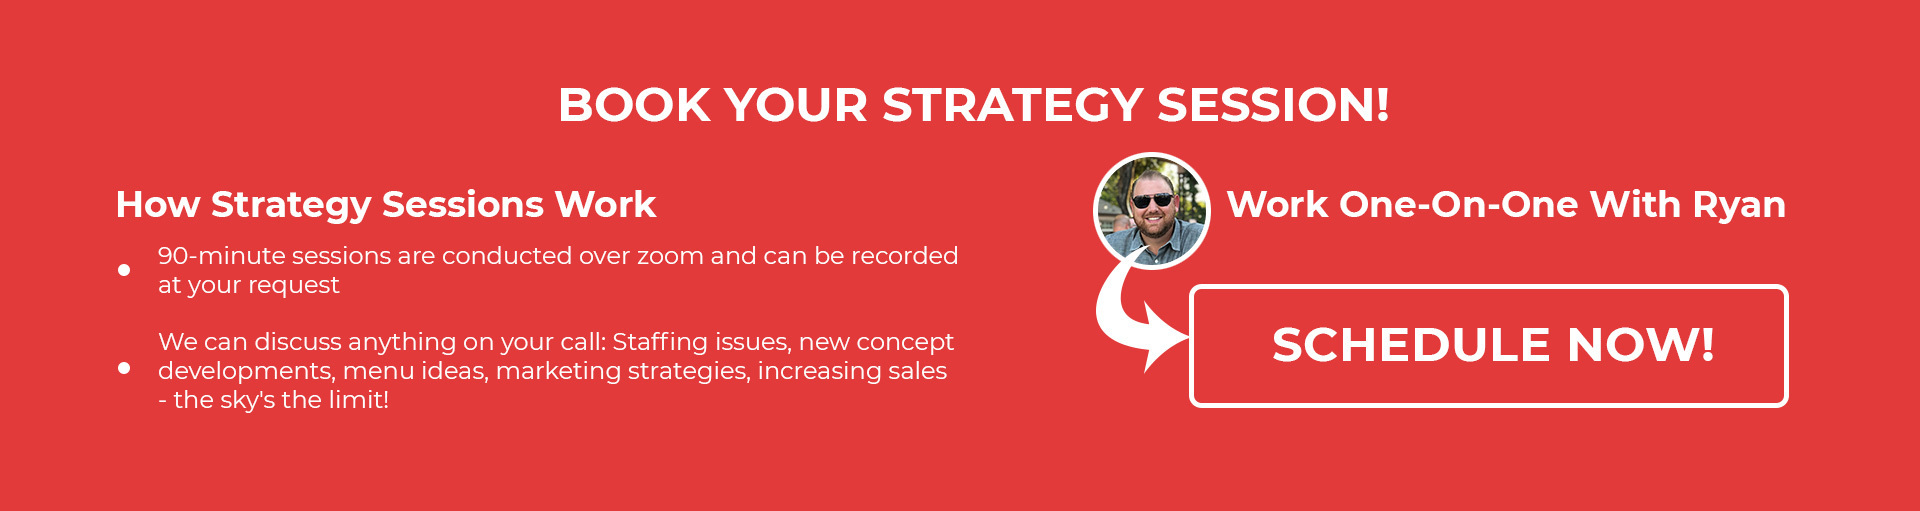 Book your strategy session with Ryan